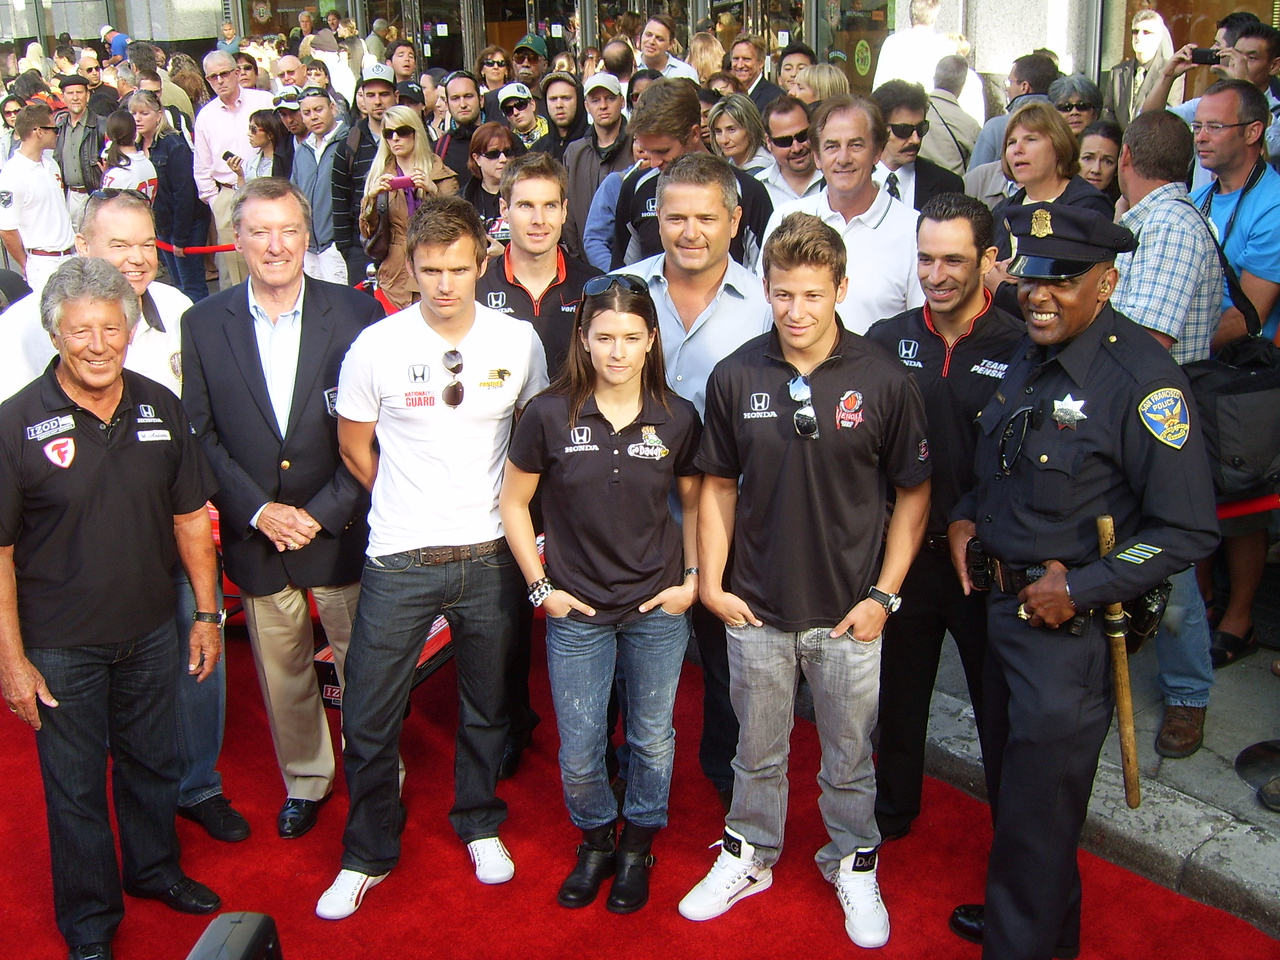 WINNER's GATHERING -- Thirteen Indianapolis 500 victories are represented in this group photo of past and present IndyCar drivers. From left, Mario Andretti, one victory; Al Unser, Jr., two wins; Johnny Rutherford, three; Dan Weldon, one; Will Power; Danica Patrick; Gil DeFerran, one; Marco Andretti; Arie Luyendyk, two; and Helio Castroneves, three.